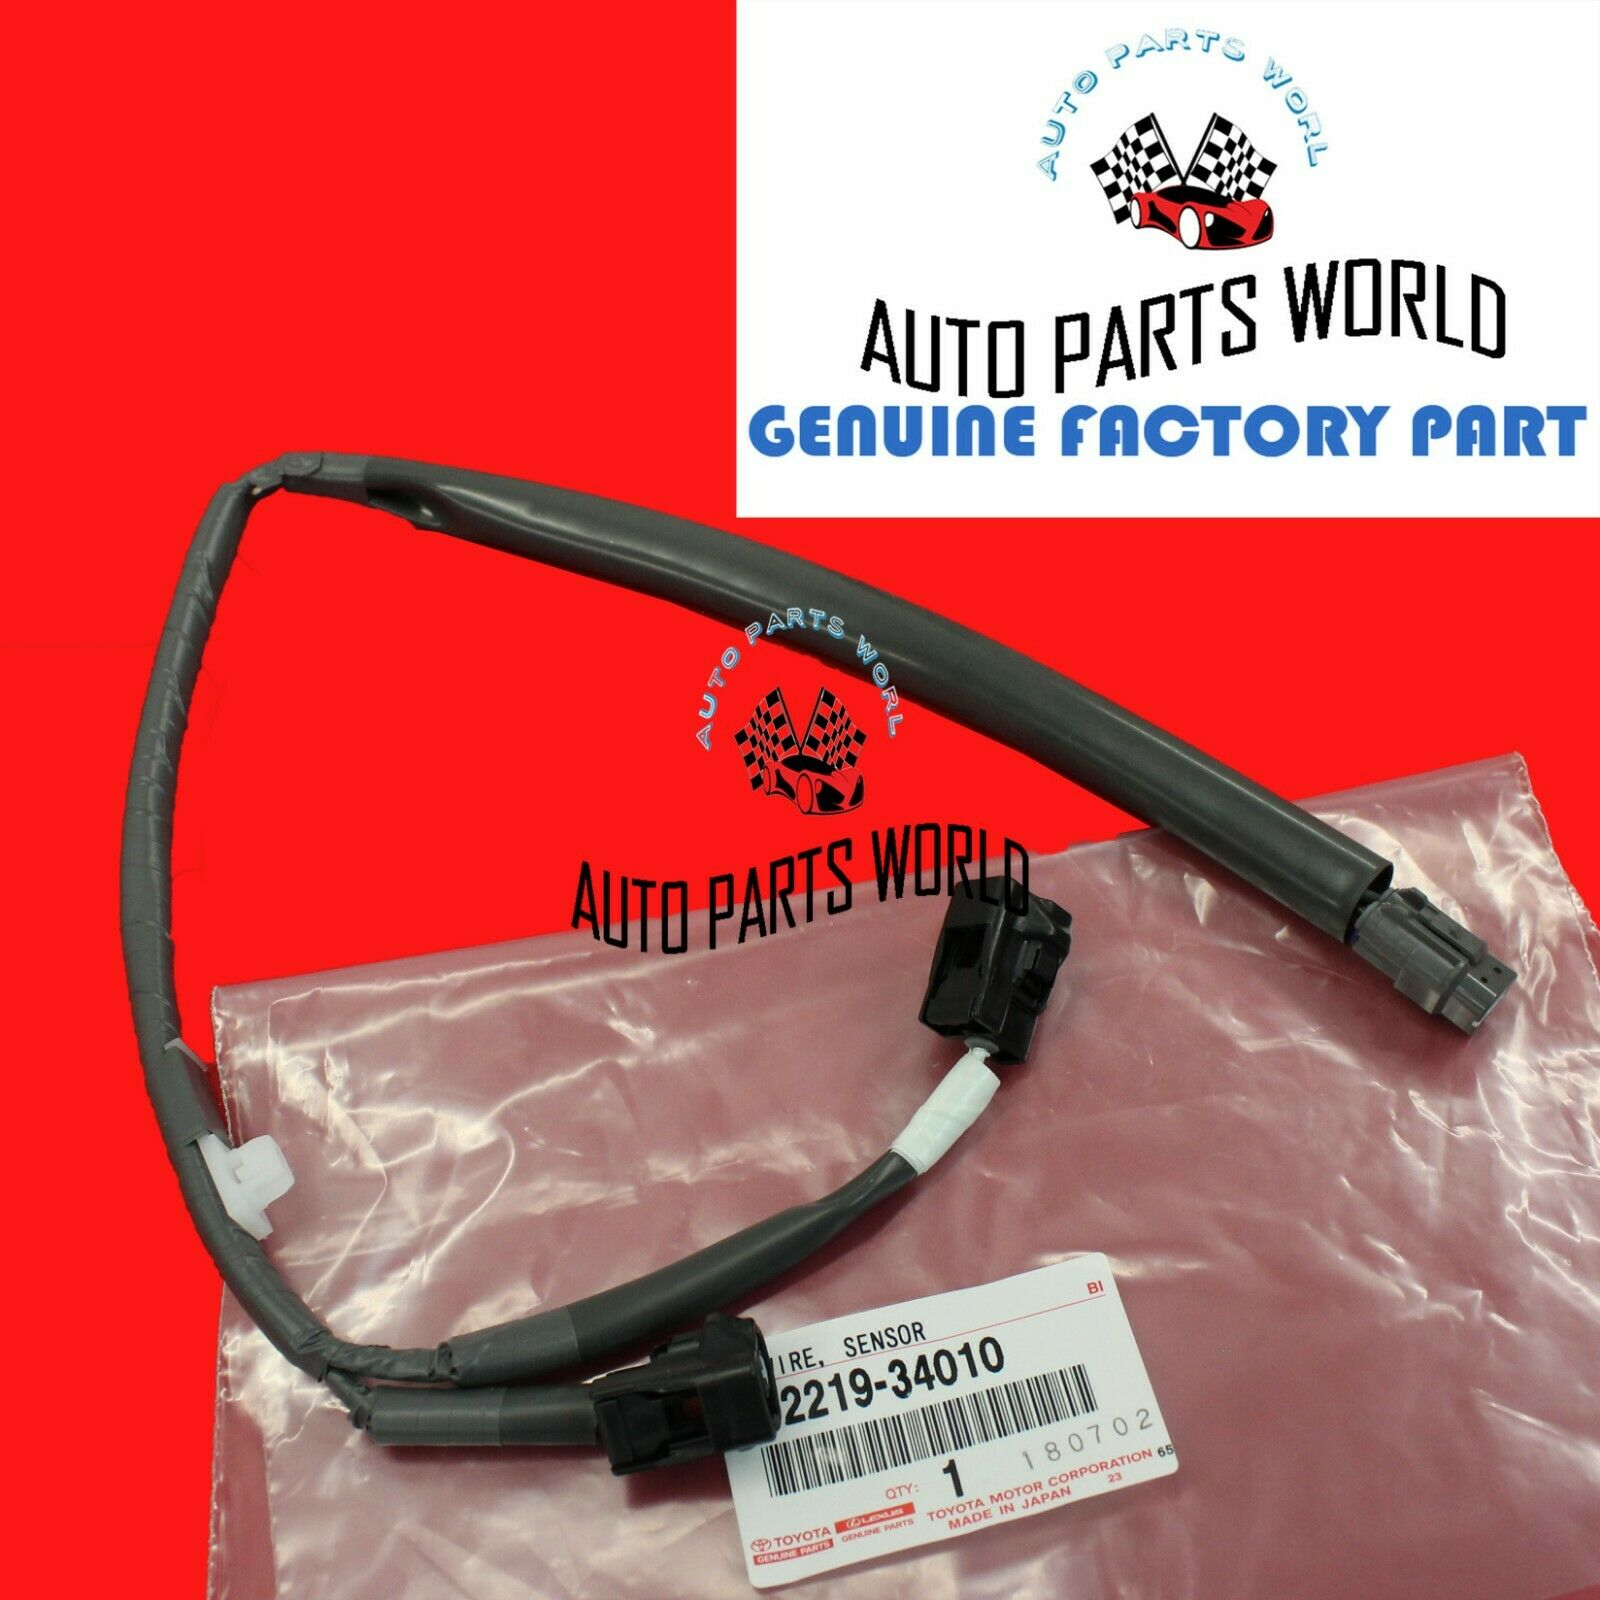 Toyota Wiring Harness Parts Library 2014 Tundra Oem Amp Diagram Genuine 4runner Tacoma 34l Knock Sensor Wire 82219 34010 1 Of